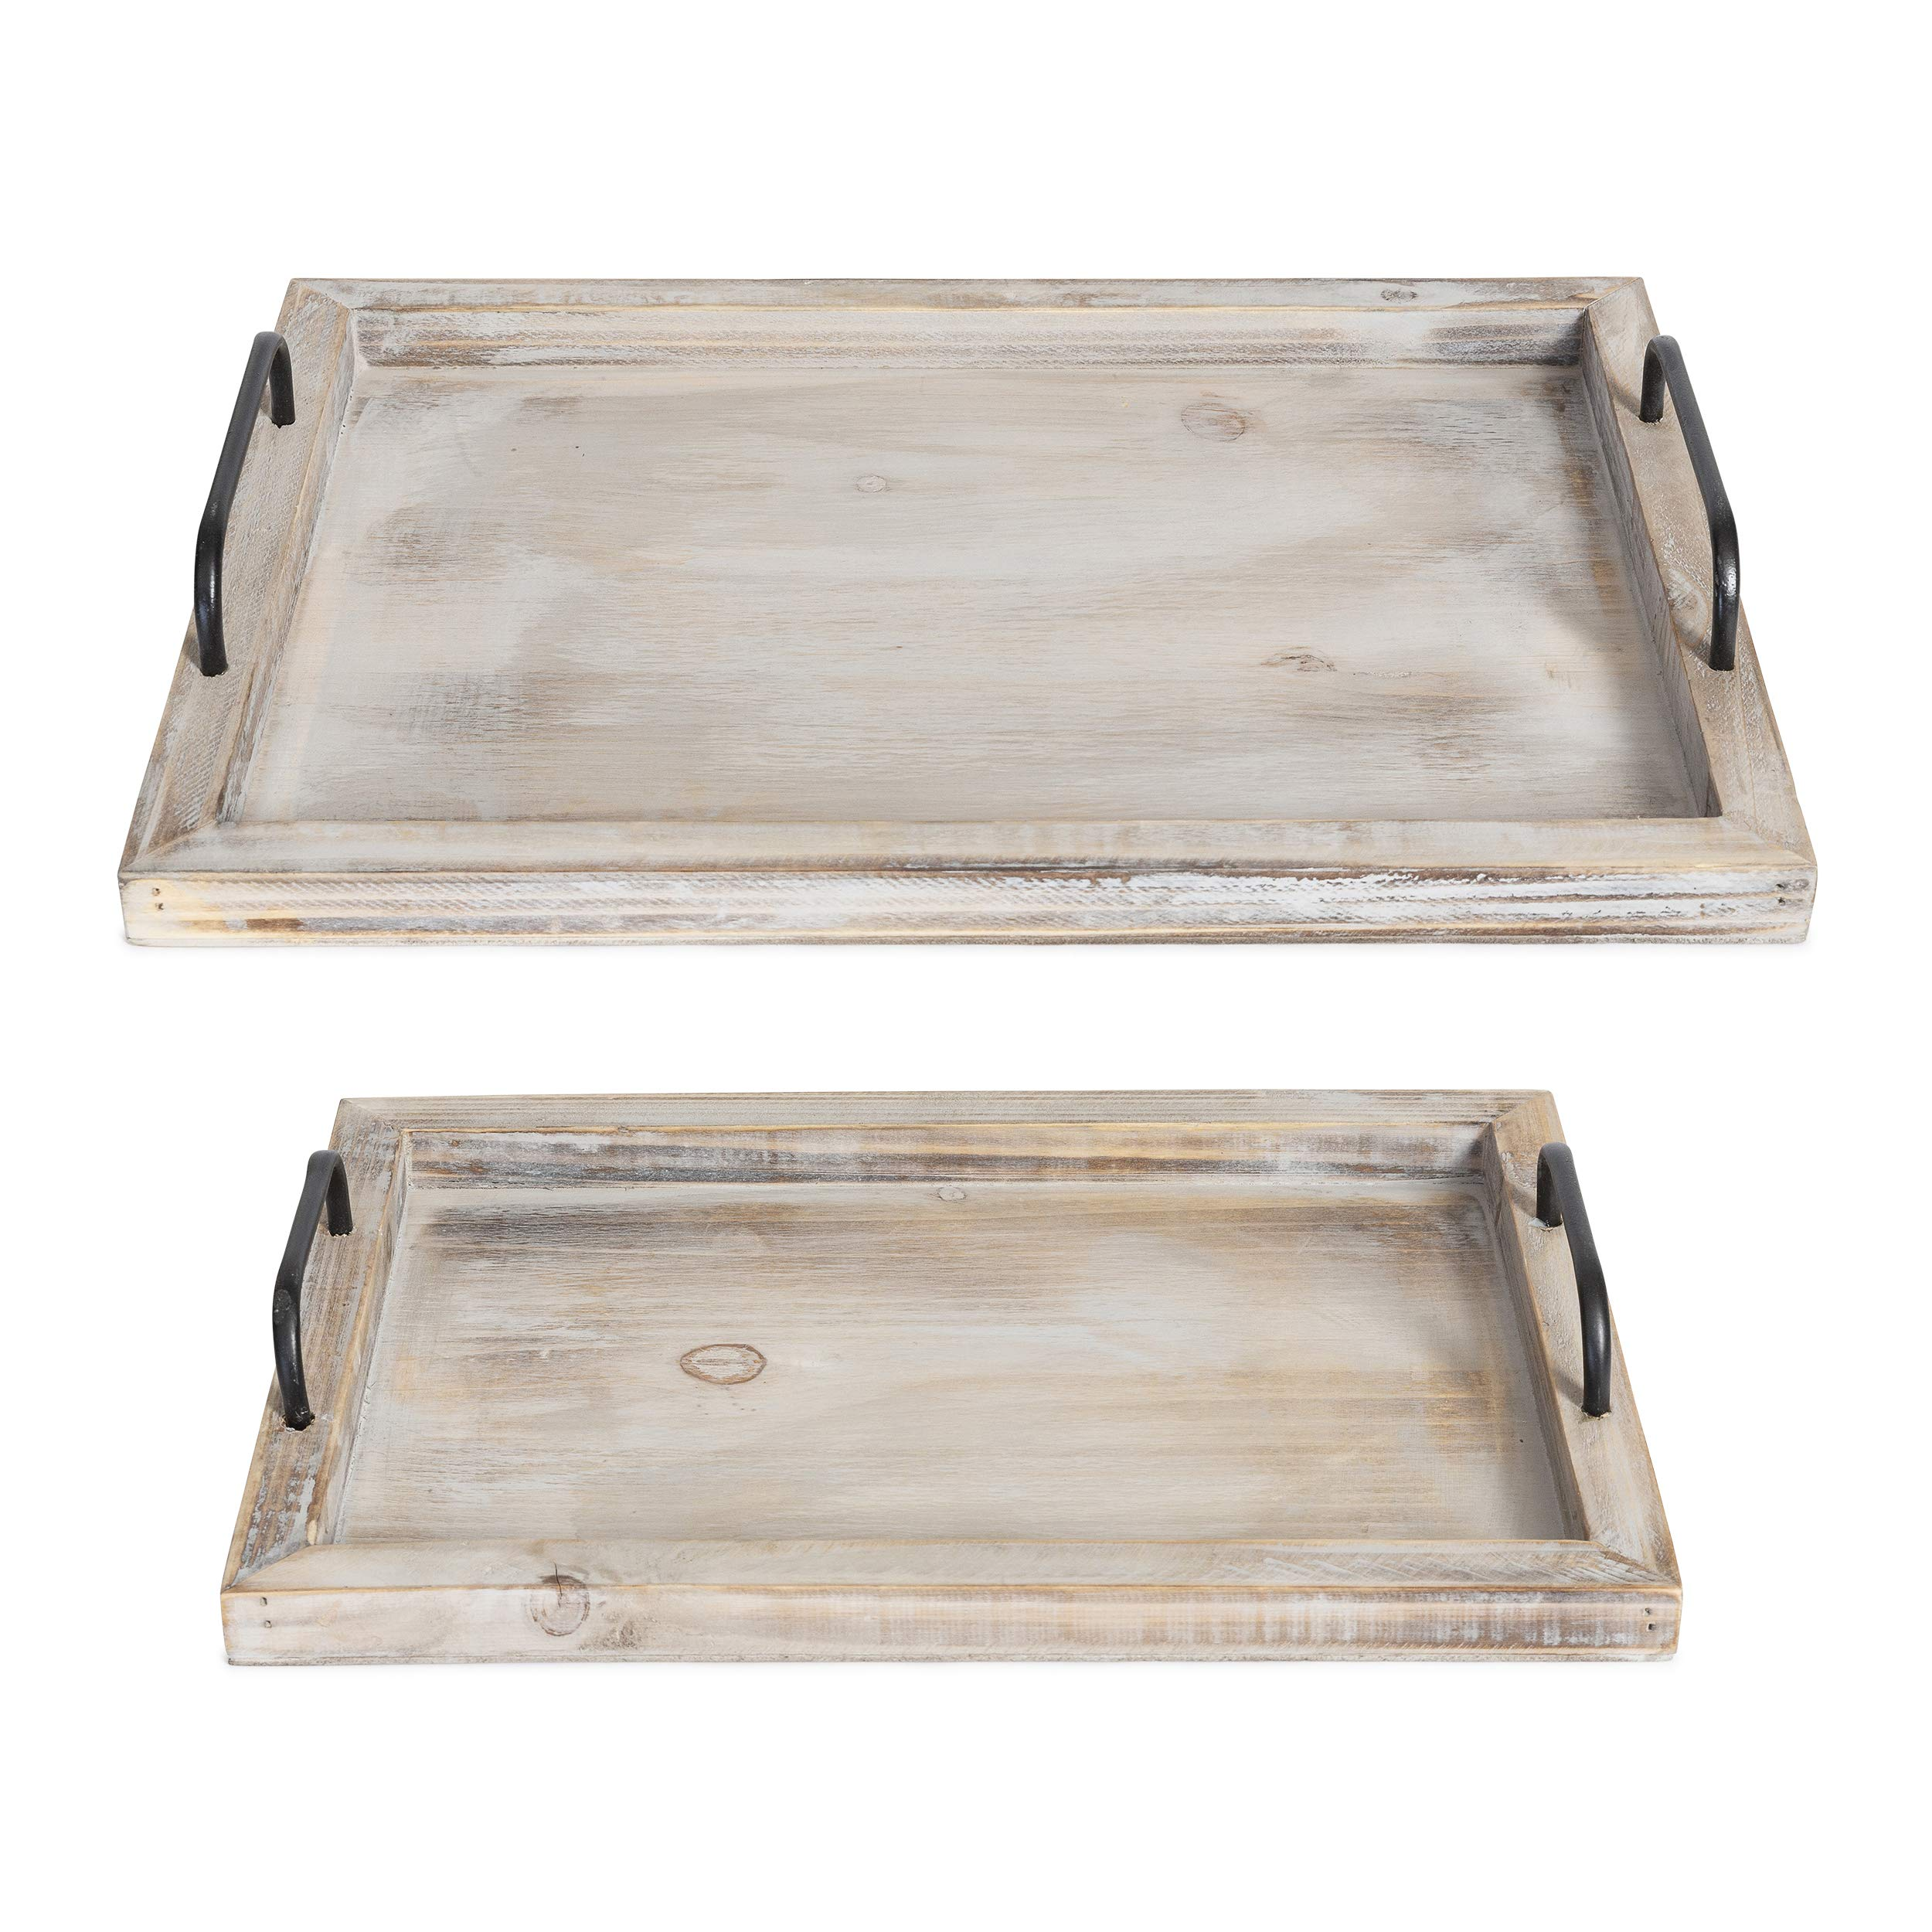 Rustic Style Rectangular Wood Serving Tray with Distressed Whitewash Finish